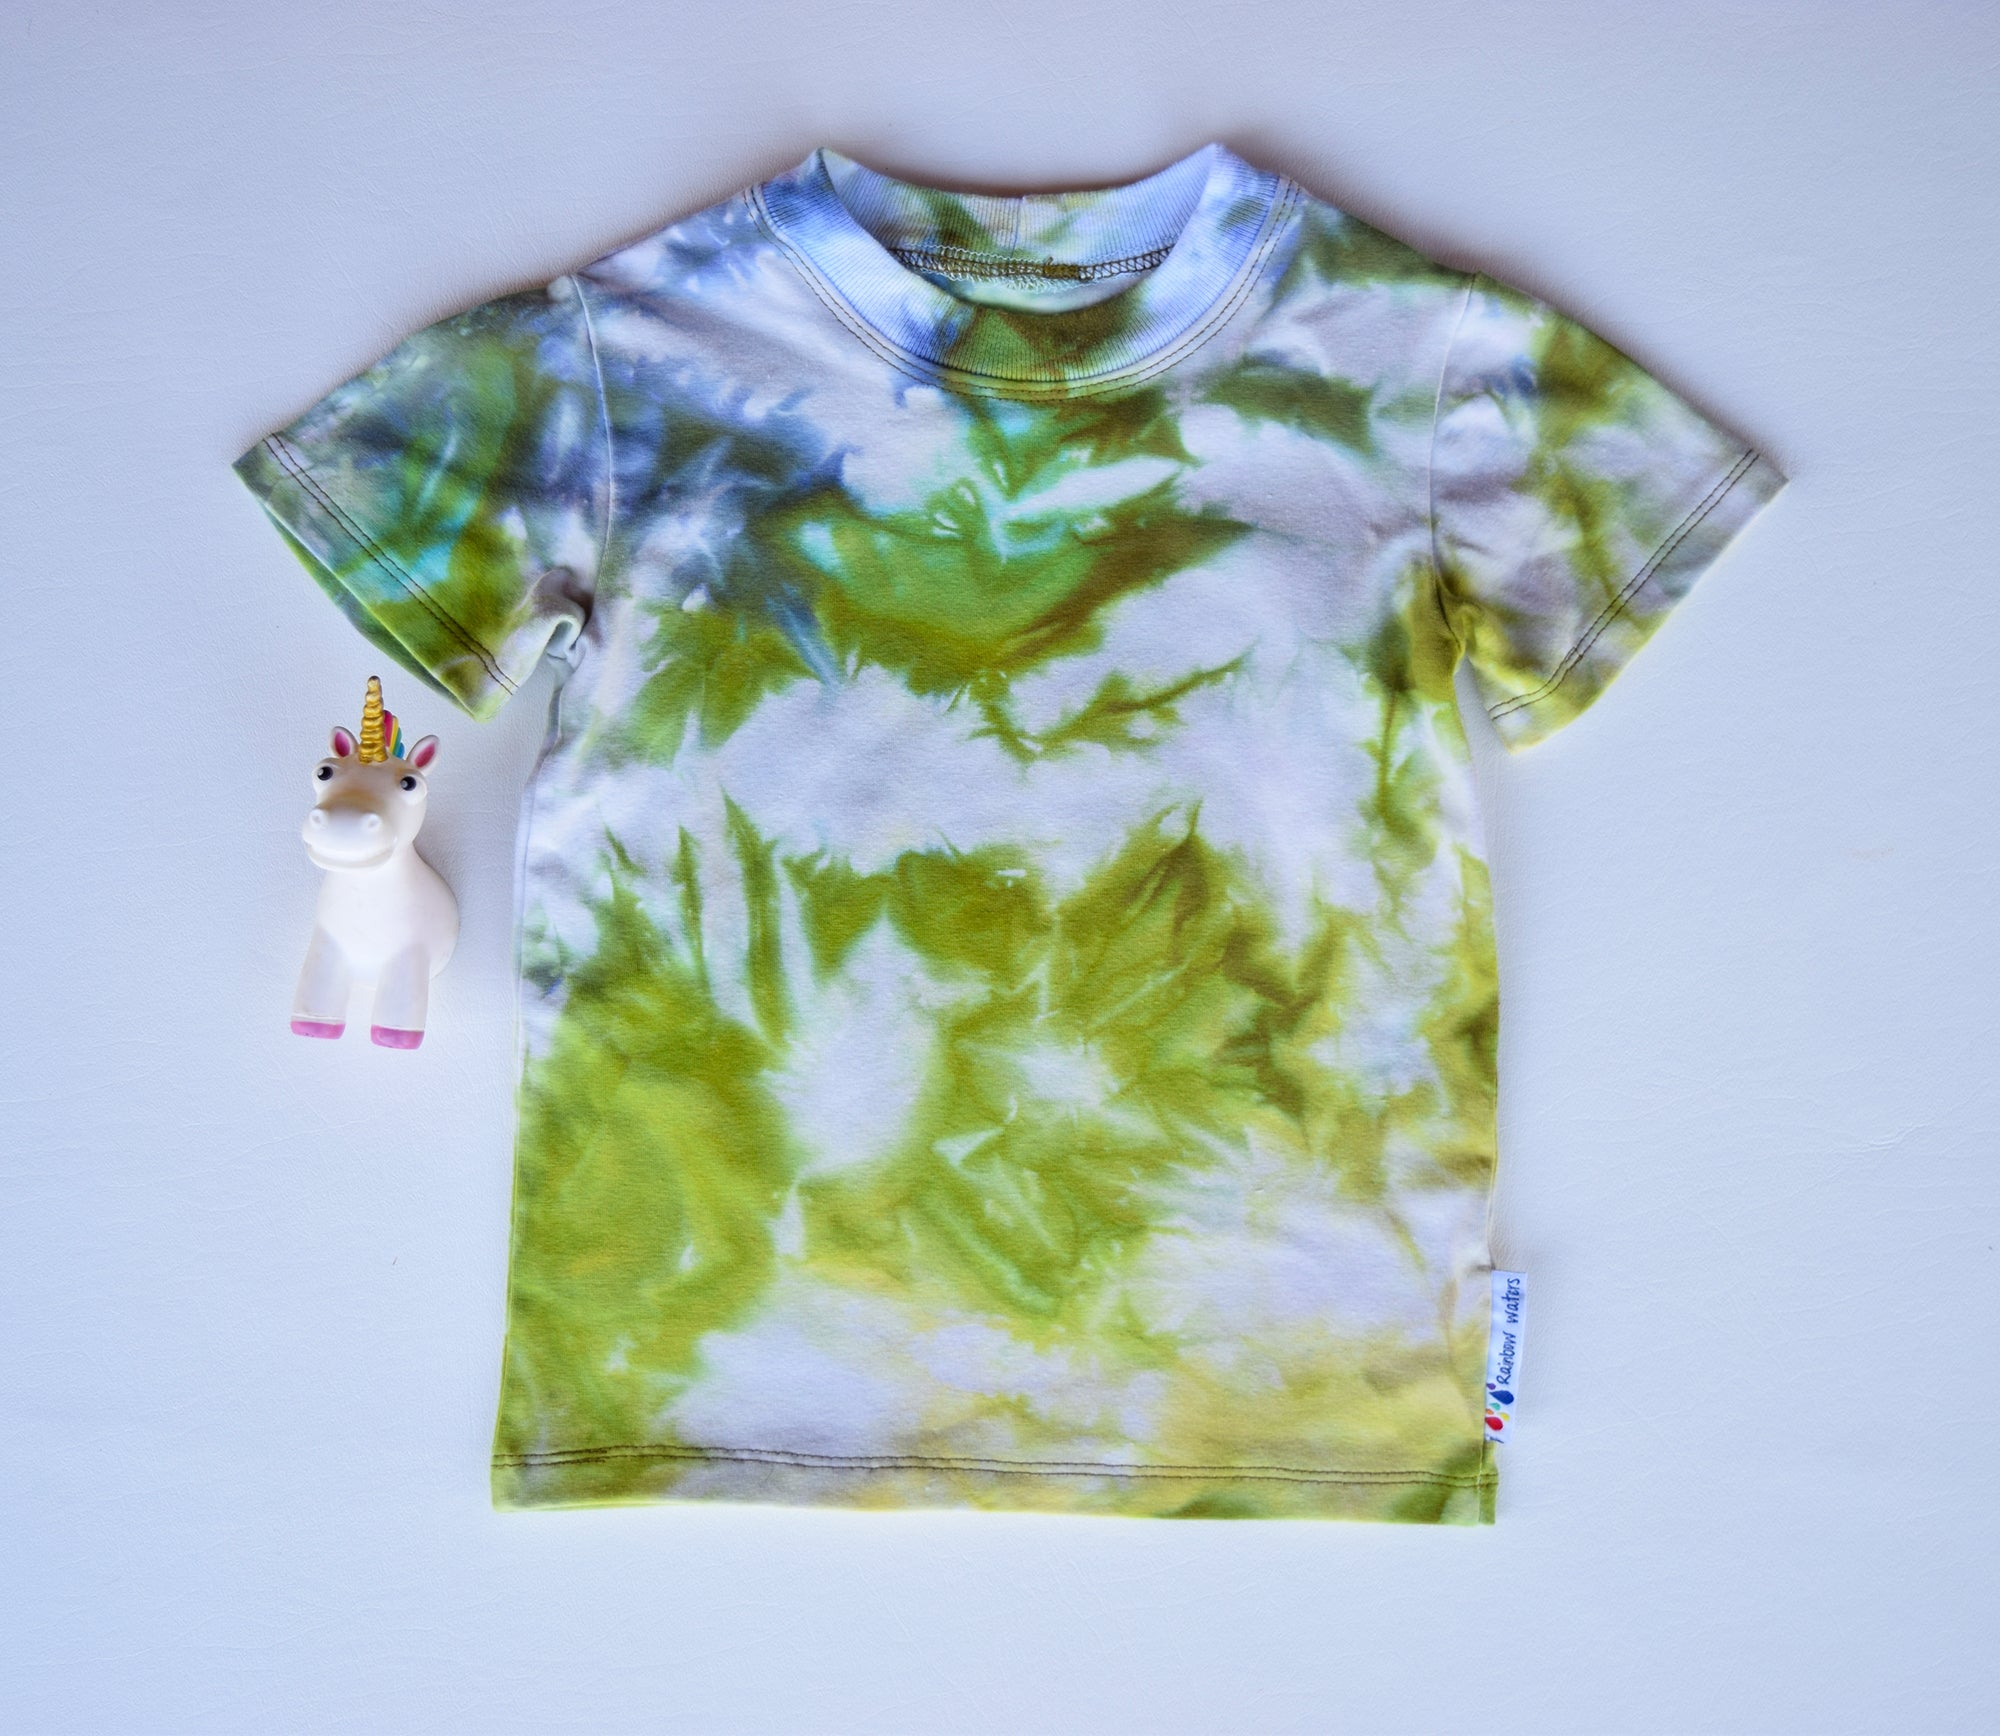 Size 4, Earthly Elements, LWI Tie Dyed, Standard Tee, short sleeves